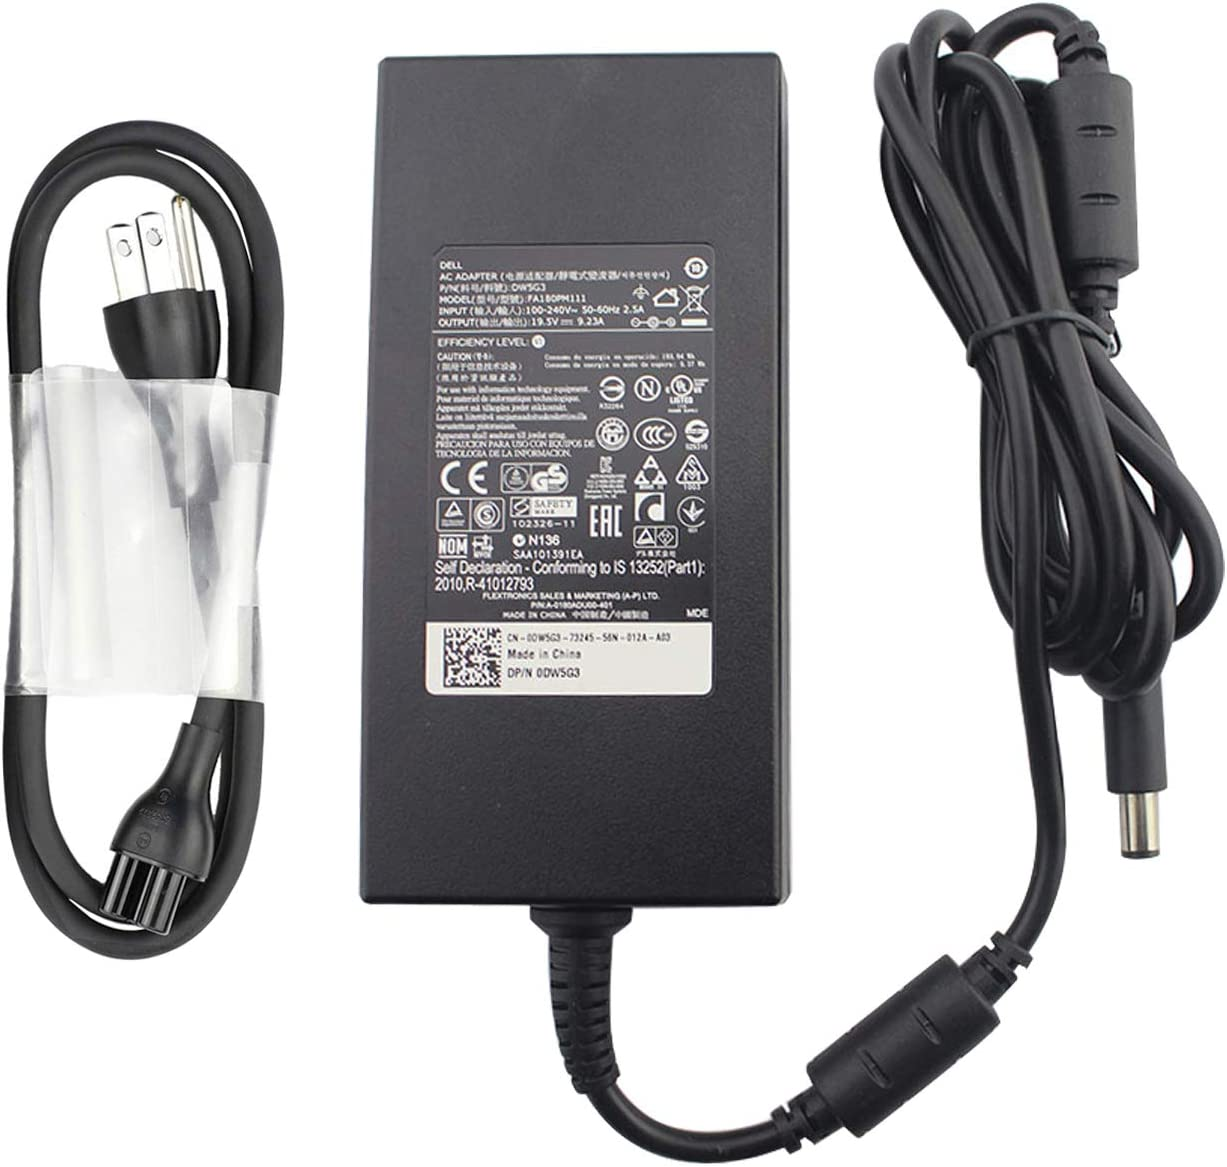 New Alienware 180W AC Charger for Dell Alienware 13 15 17 R1 R2 R3 R4 R5 M13 14 M14X M11X G3 G5 G7 Games Laptop Power Adapter Supply